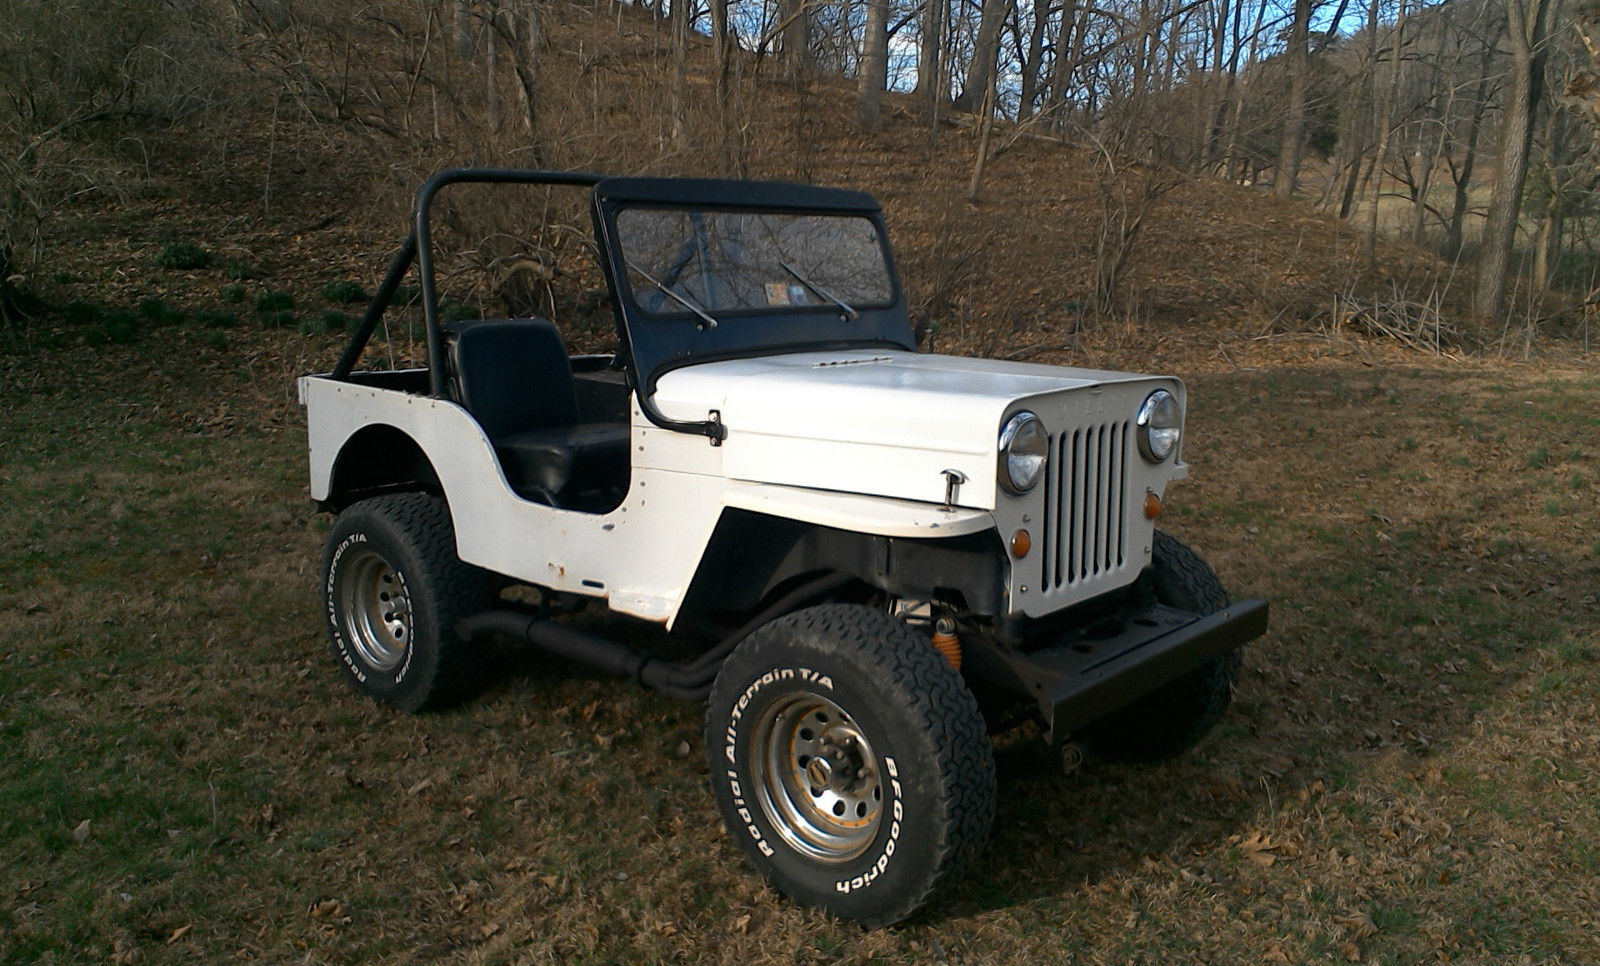 hight resolution of willys ignition wiring diagram wiring library jeep cj5 tires besides 1984 jeep cj7 ignition wiring diagram